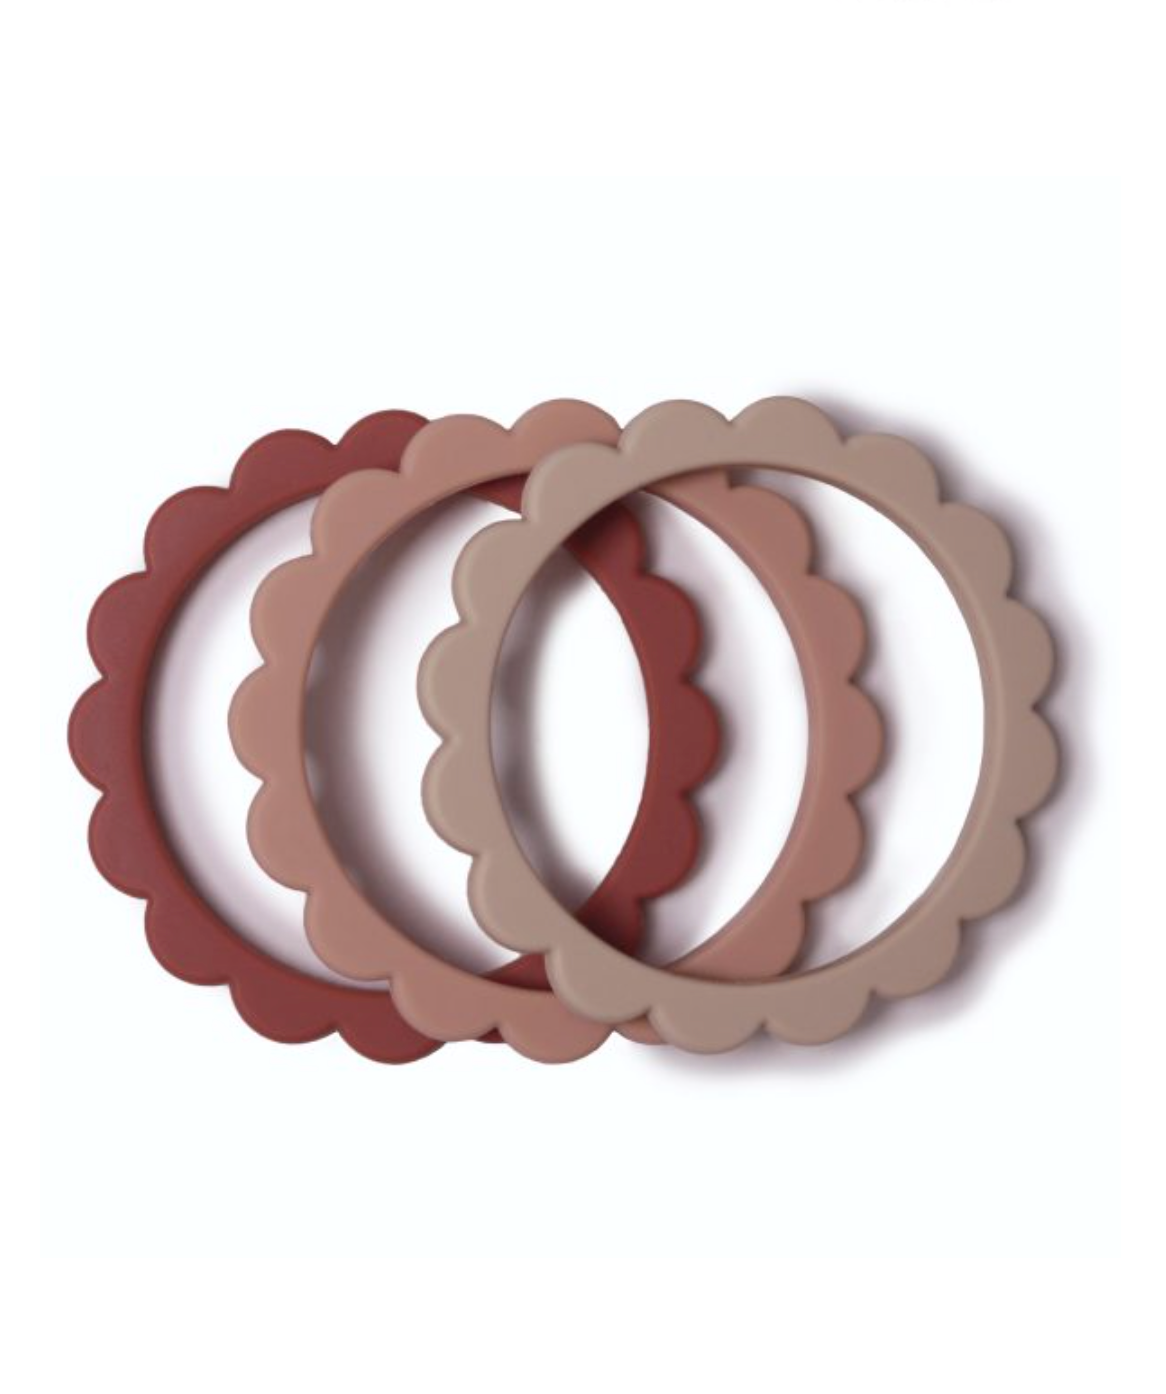 Flower Teething Bracelet 3-Pack (Rose/Blush/Shifting Sand)